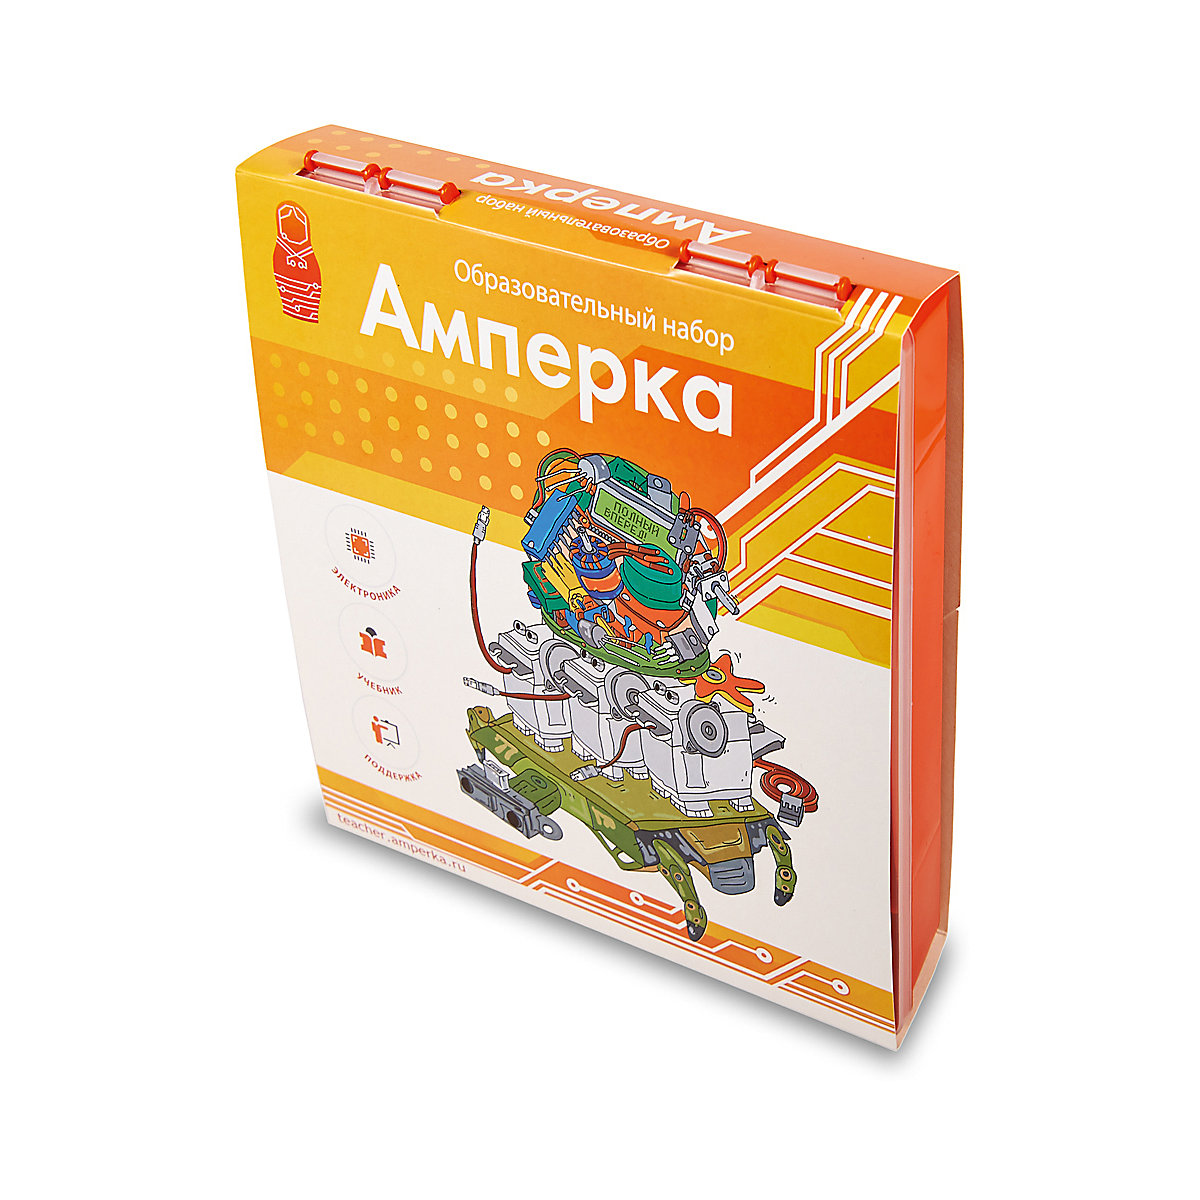 AMPERKA Blocks 5427690 toys for boys girls building construction educational developing toy game play team modeling boy girl играем вместе рюкзак ранец минни маус disney